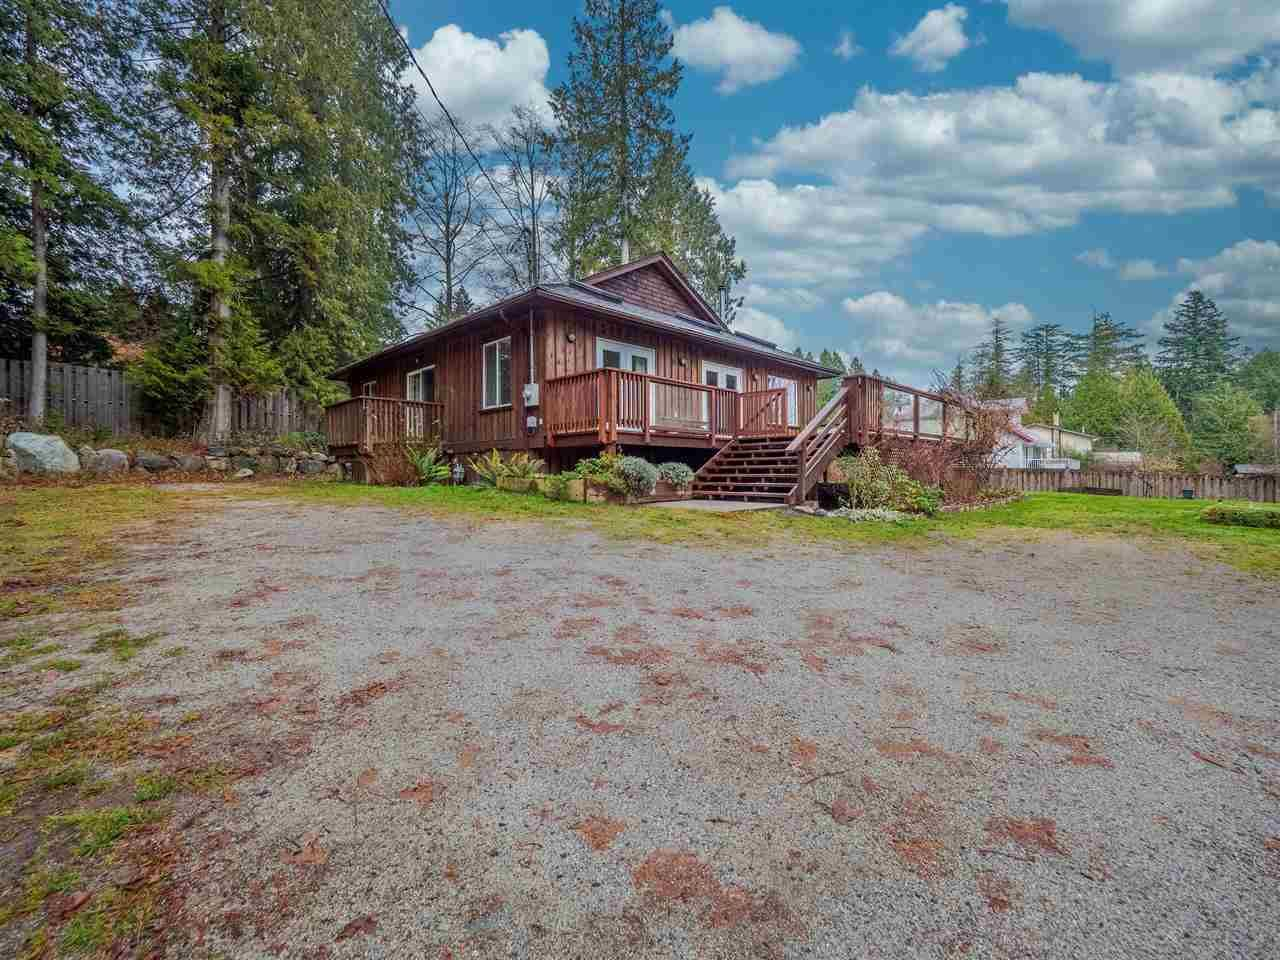 Main Photo: 130 PRATT Road in Gibsons: Gibsons & Area House for sale (Sunshine Coast)  : MLS®# R2424440